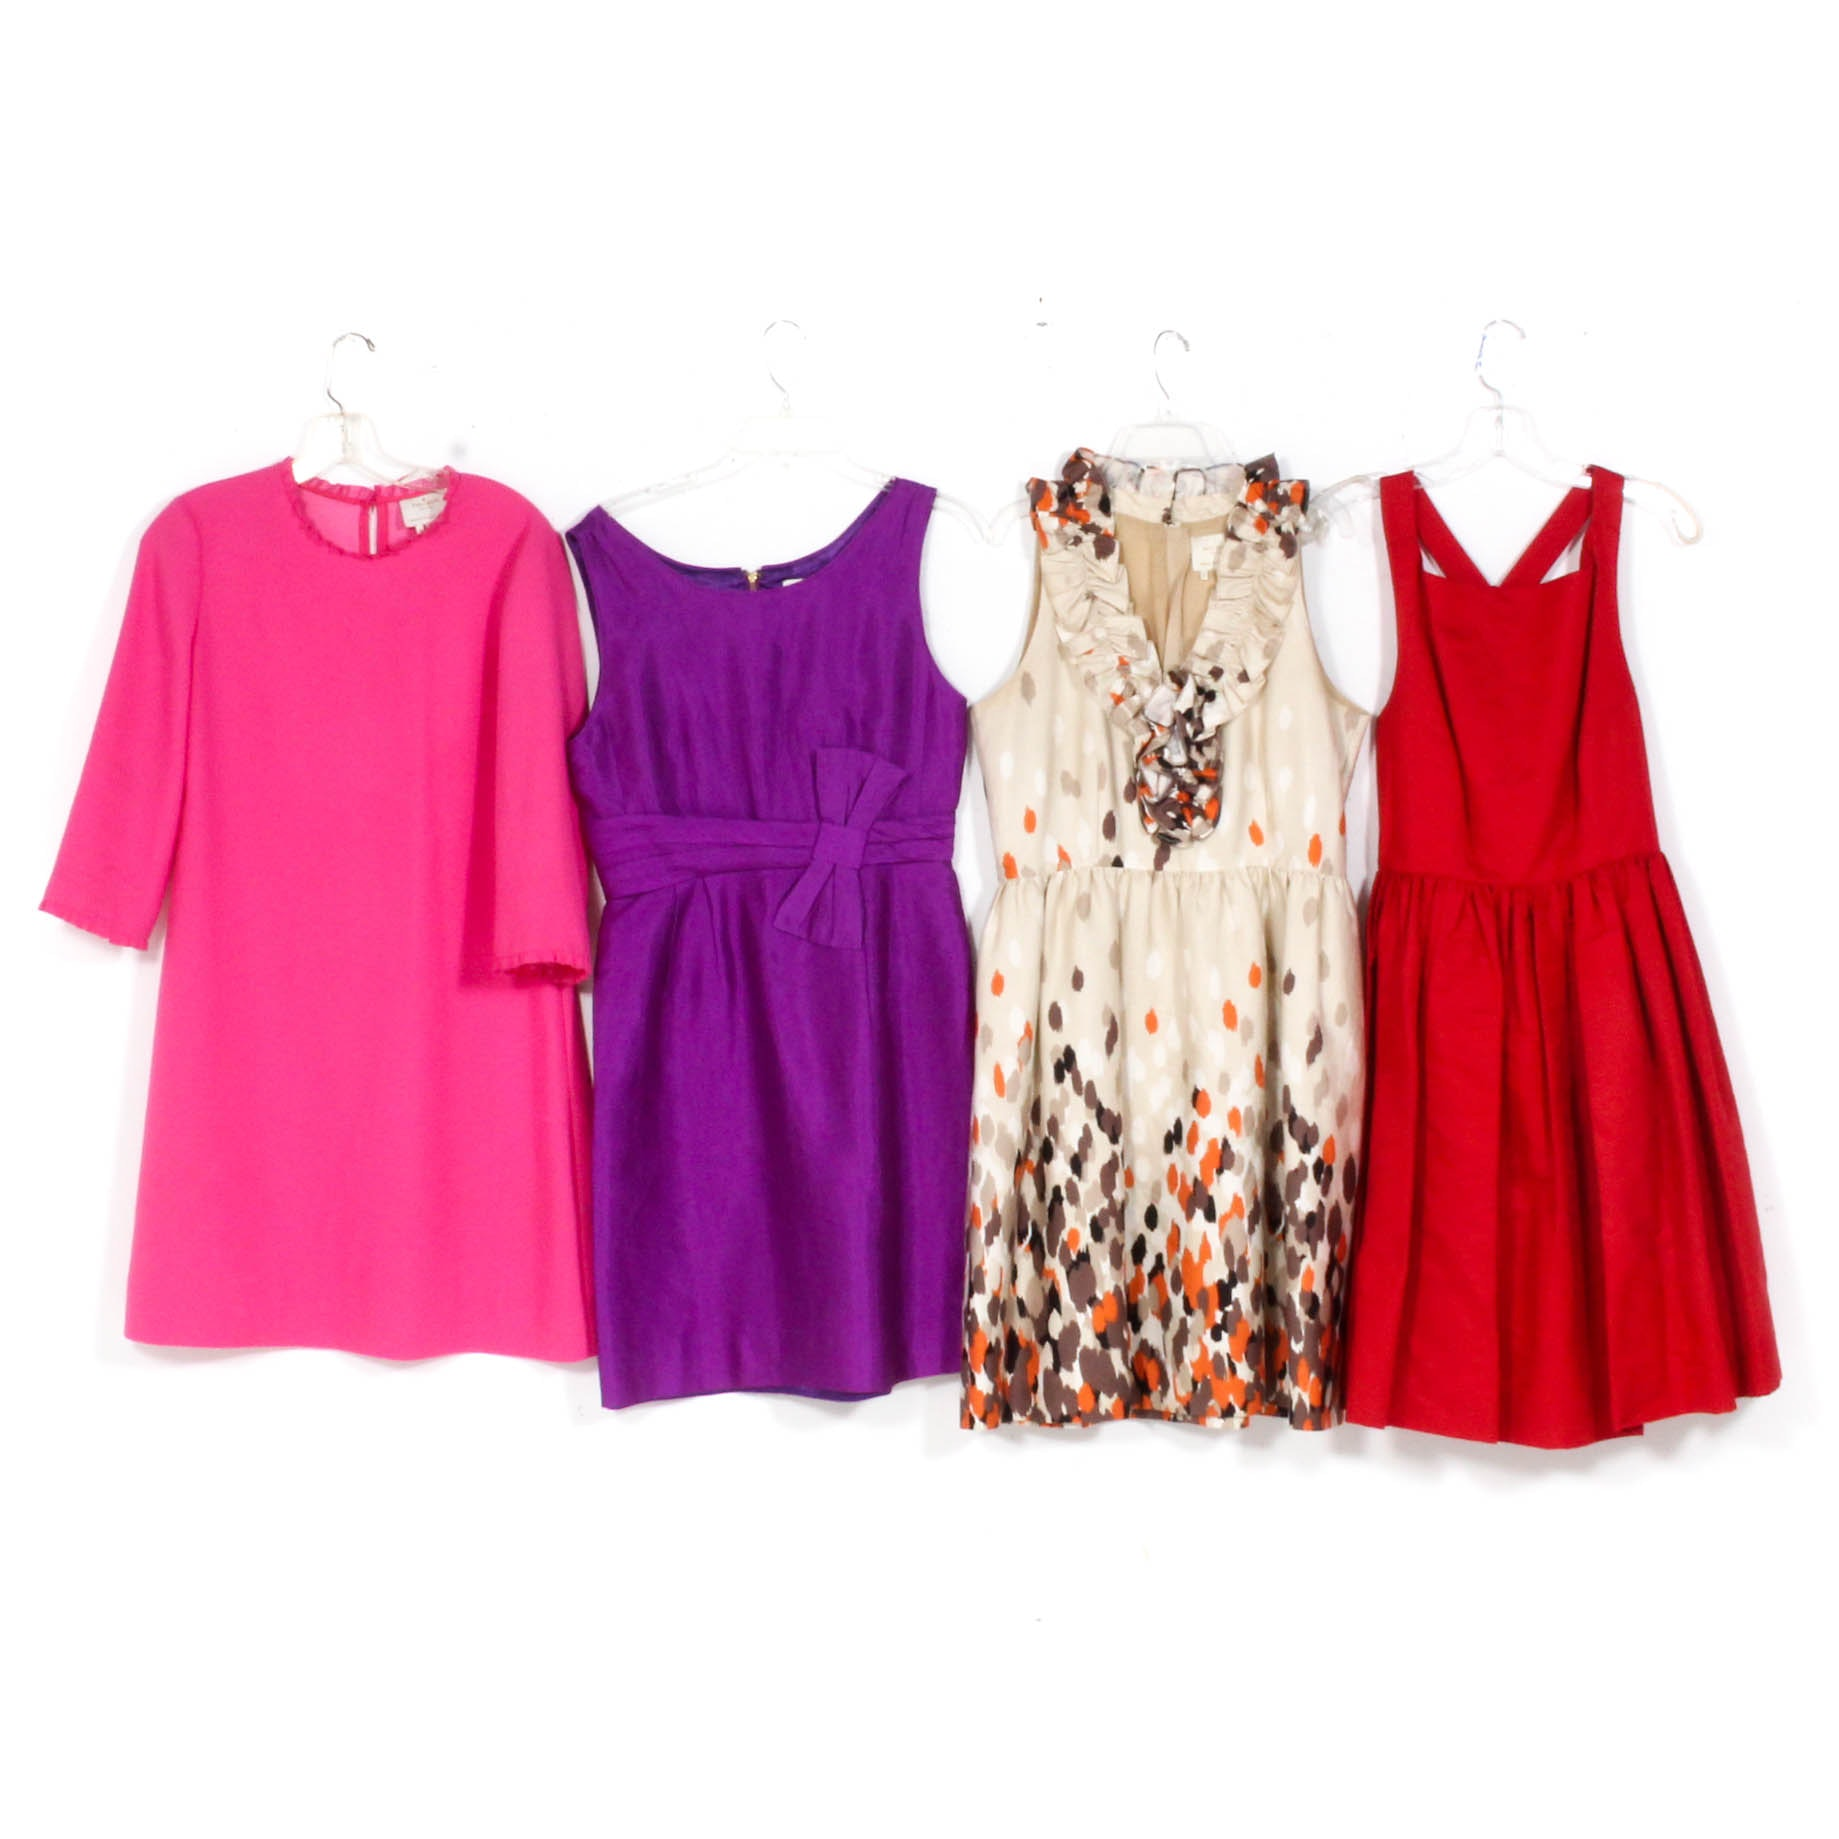 Kate Spade New York Dresses